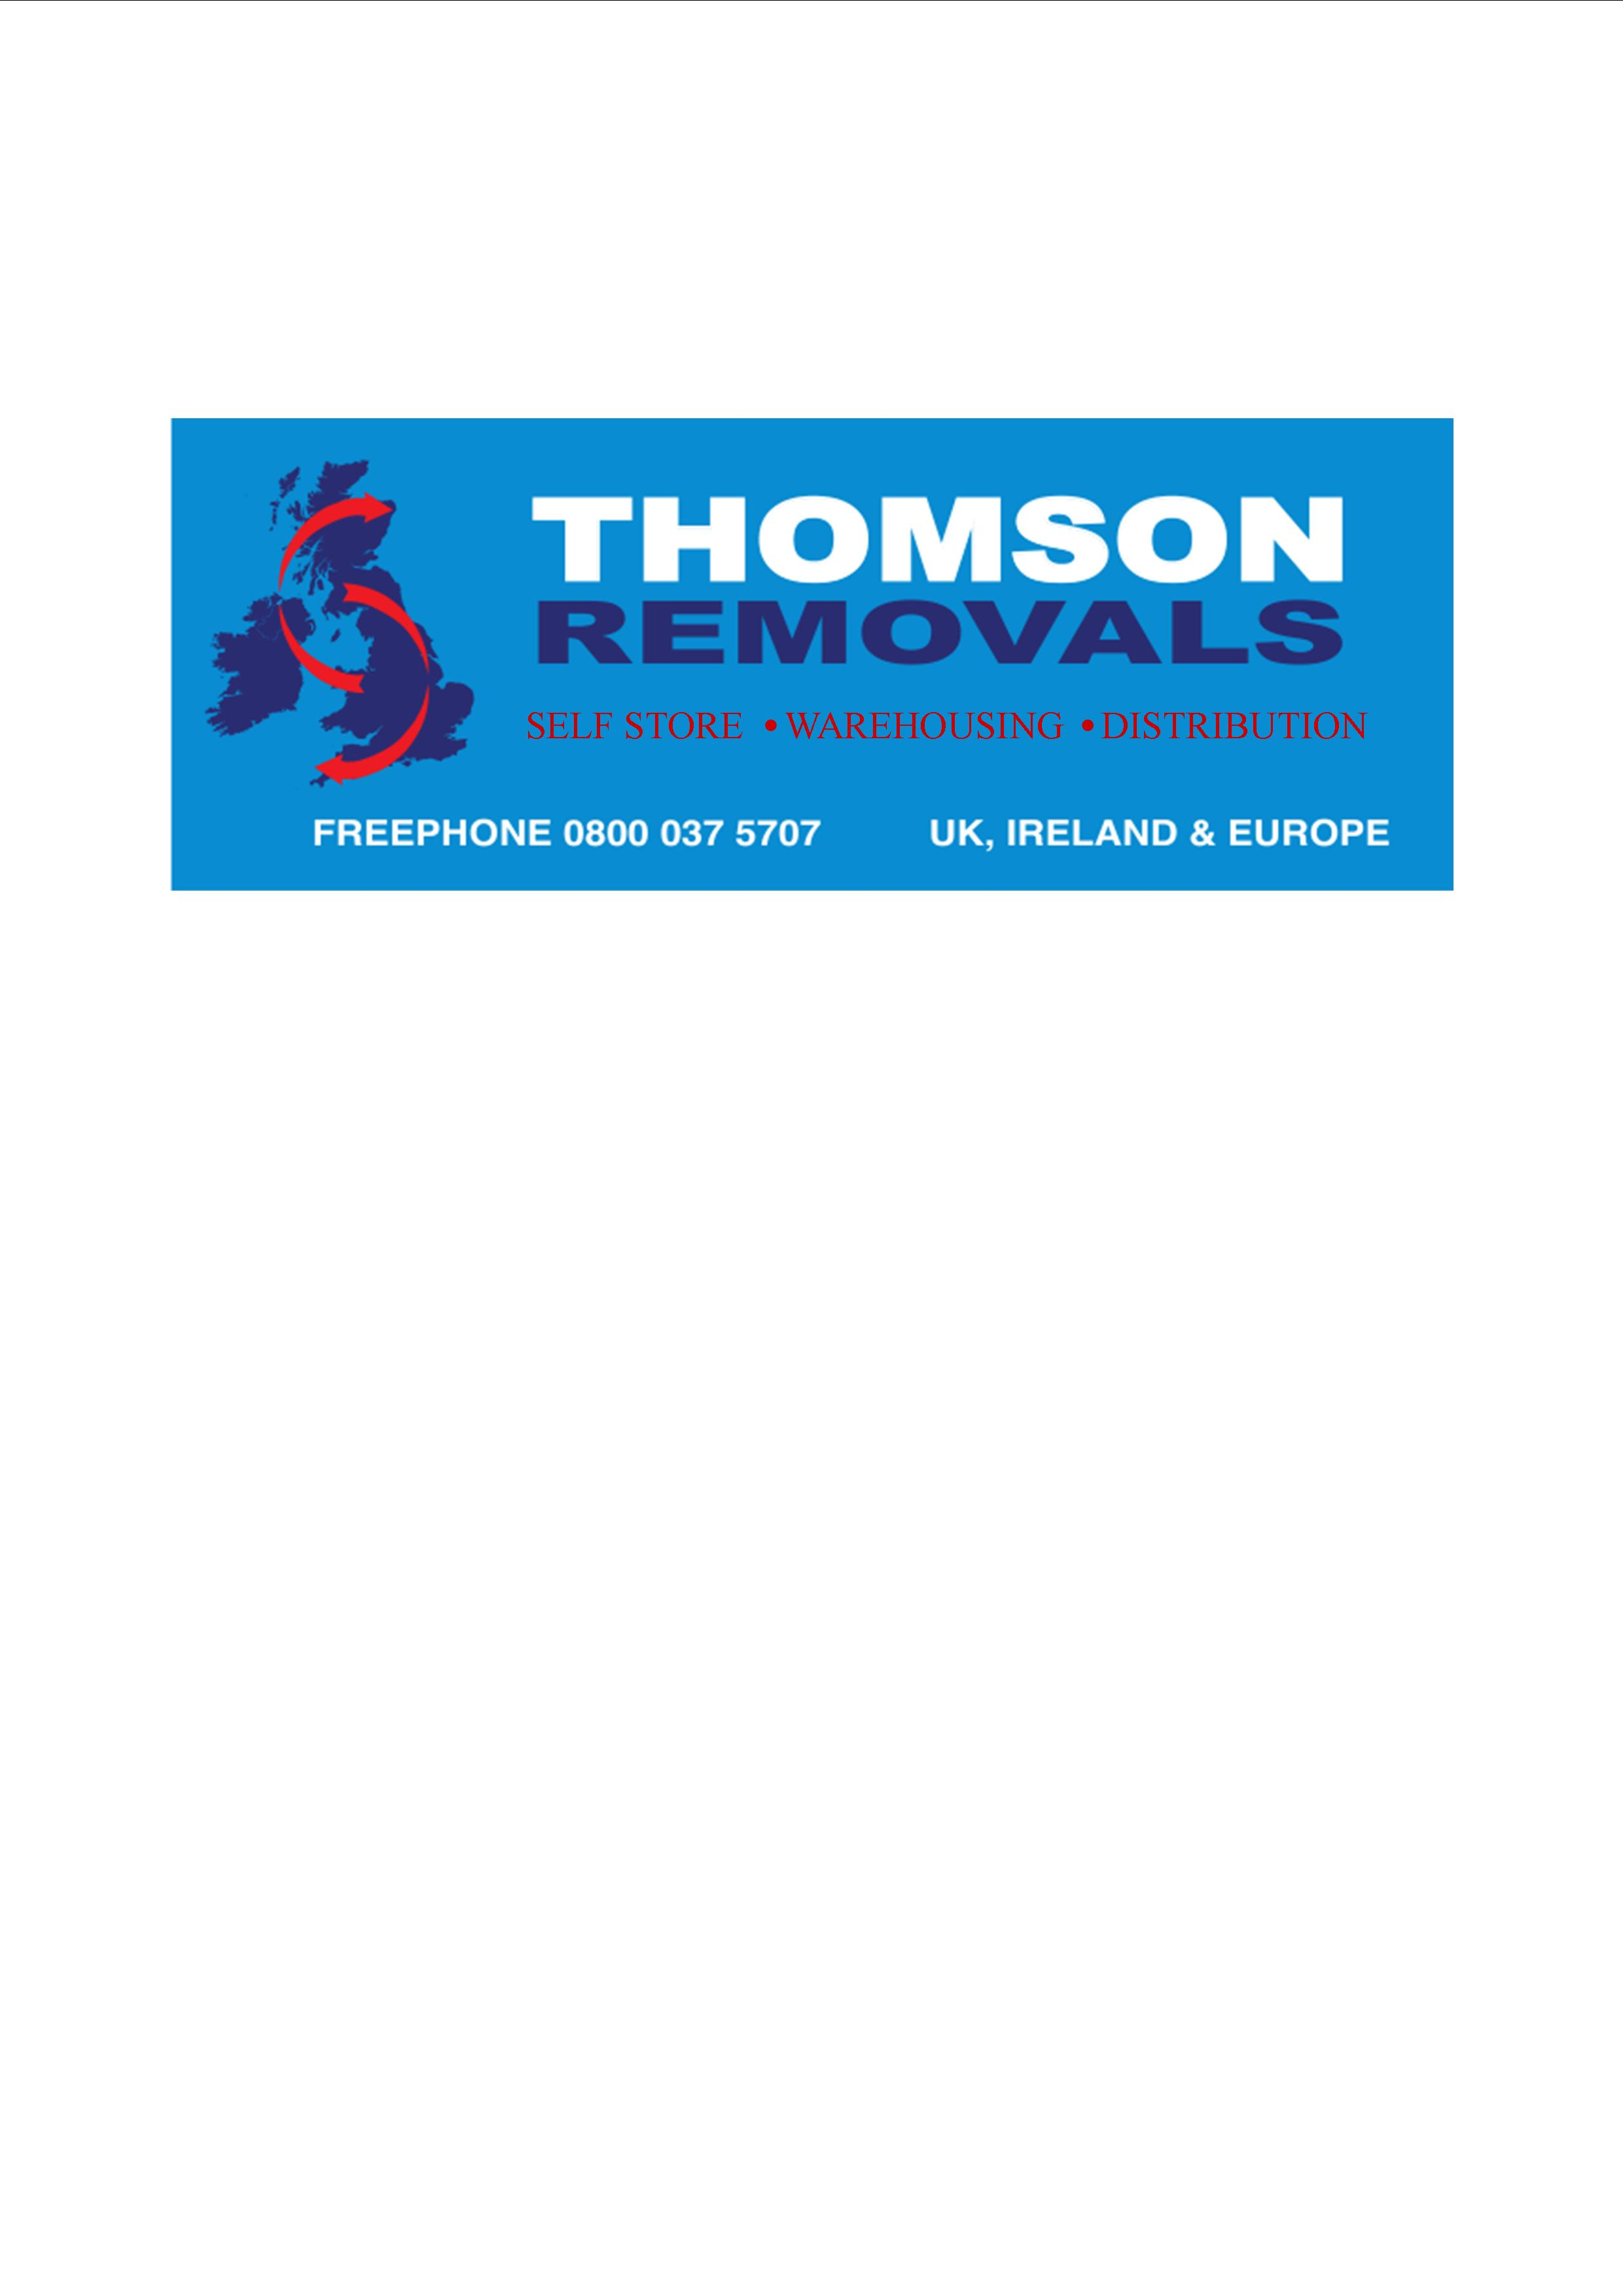 THOMSON REMOVALS AND SELF STORAGE